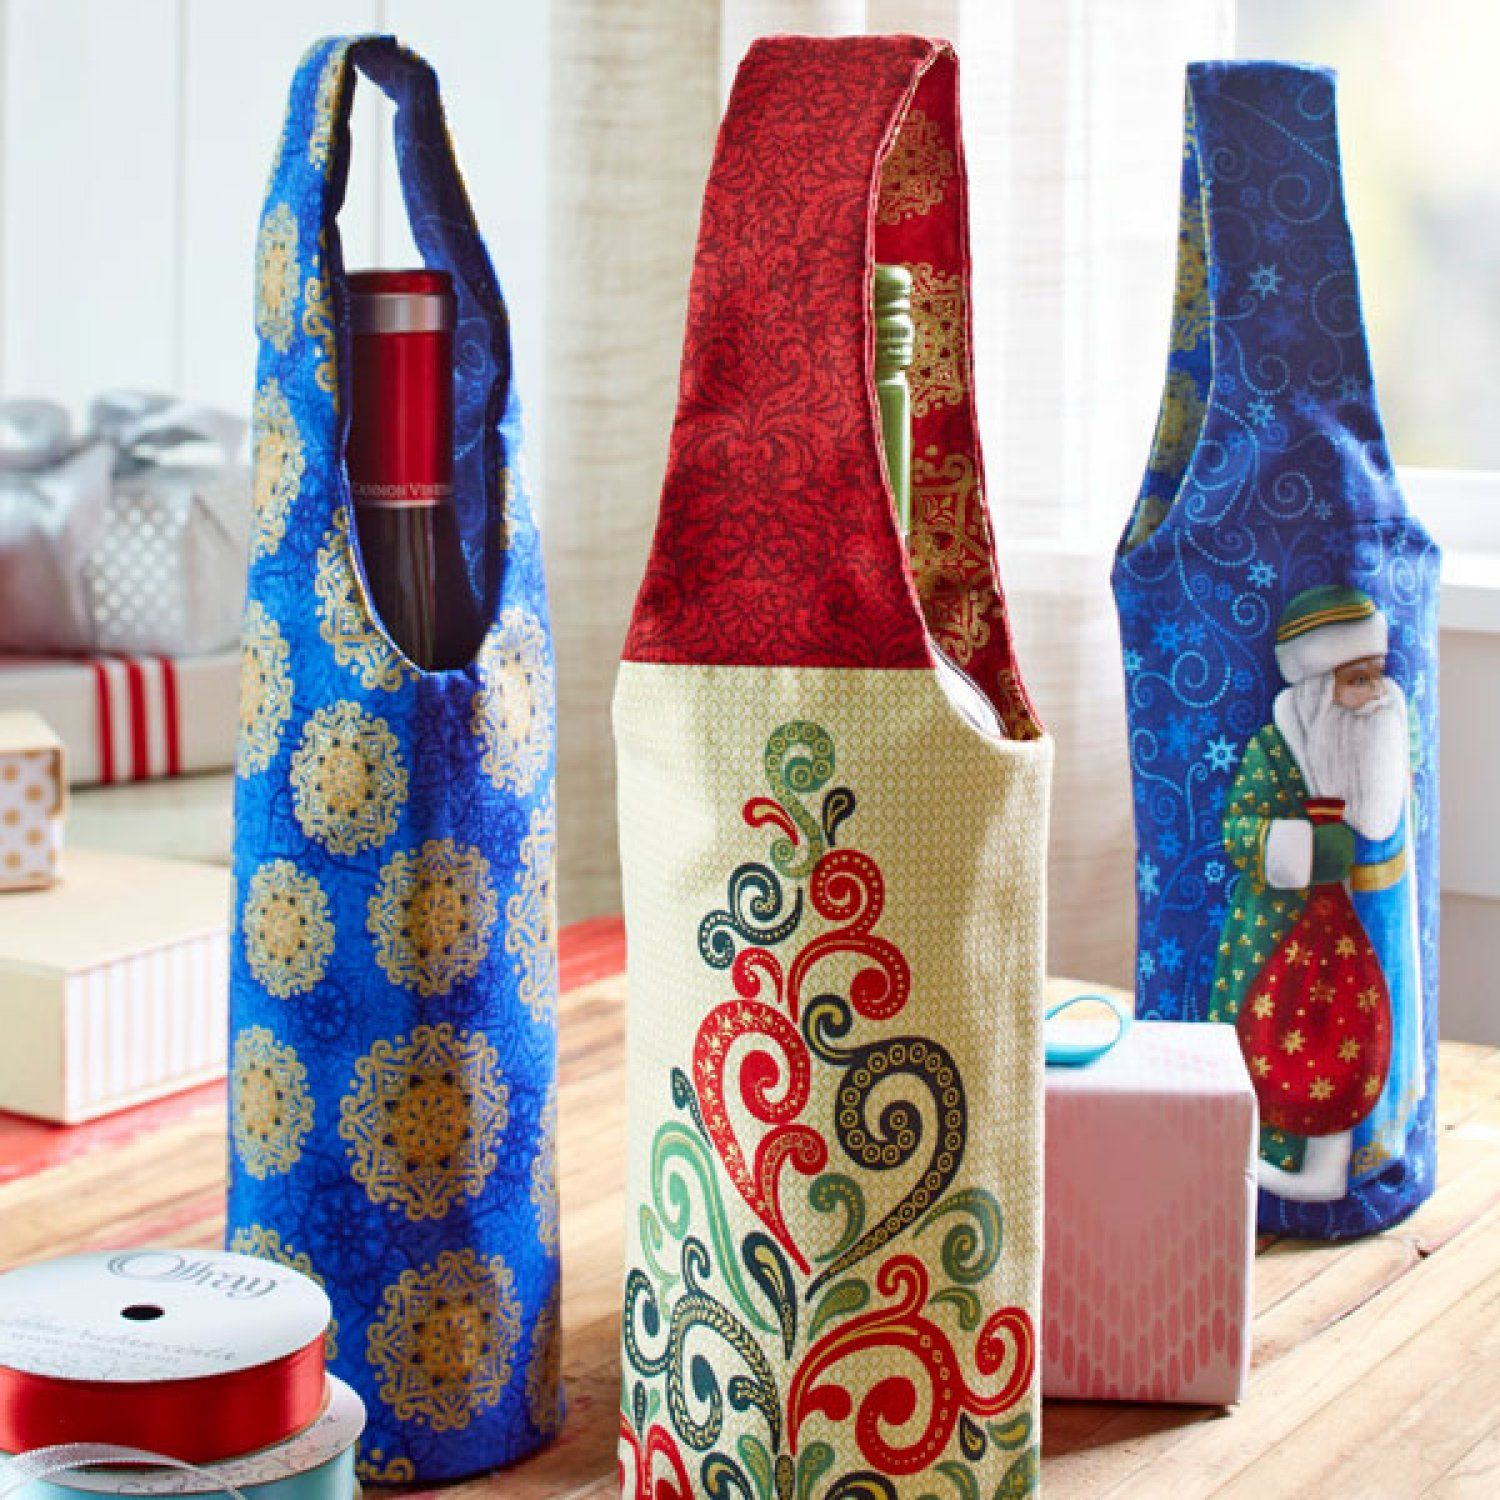 Make A Gift Of Wine Or Other Food Item More Memorable By Creating  ~ Como Envolver Un Bolso Para Regalo